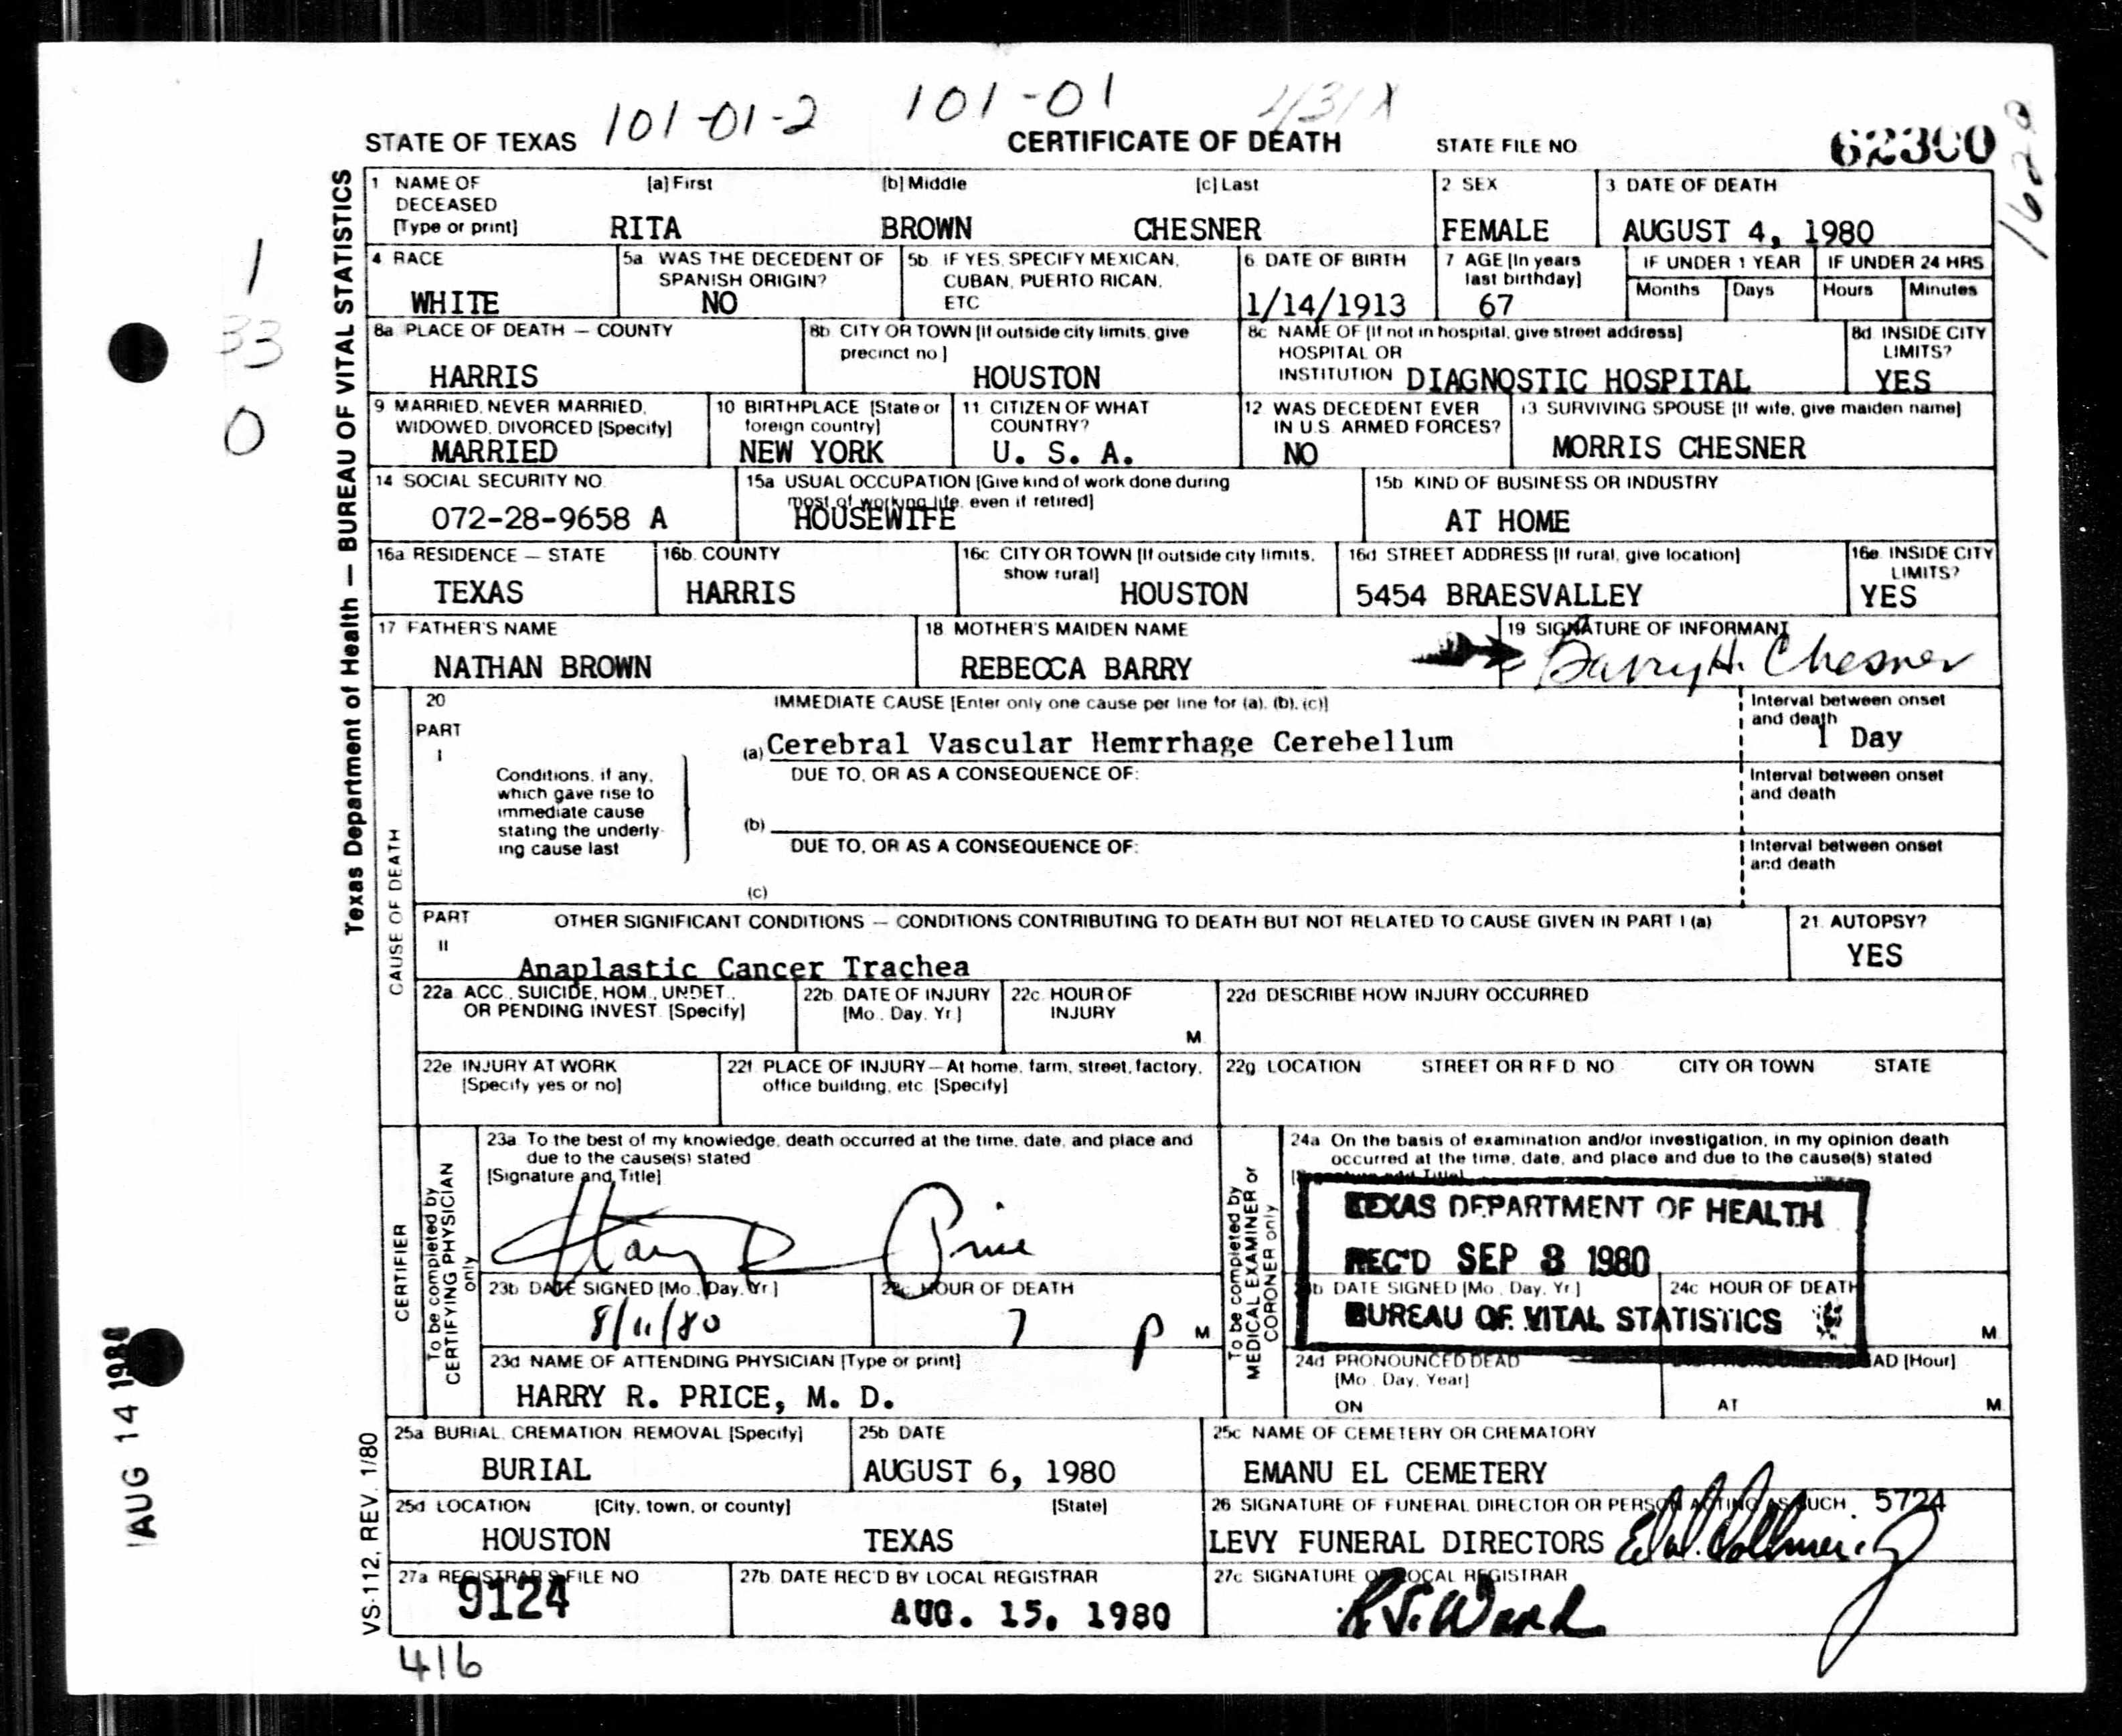 Rita Brown Chesner Death Certificate Birth Date: 14 Jan 1913 Birth ...